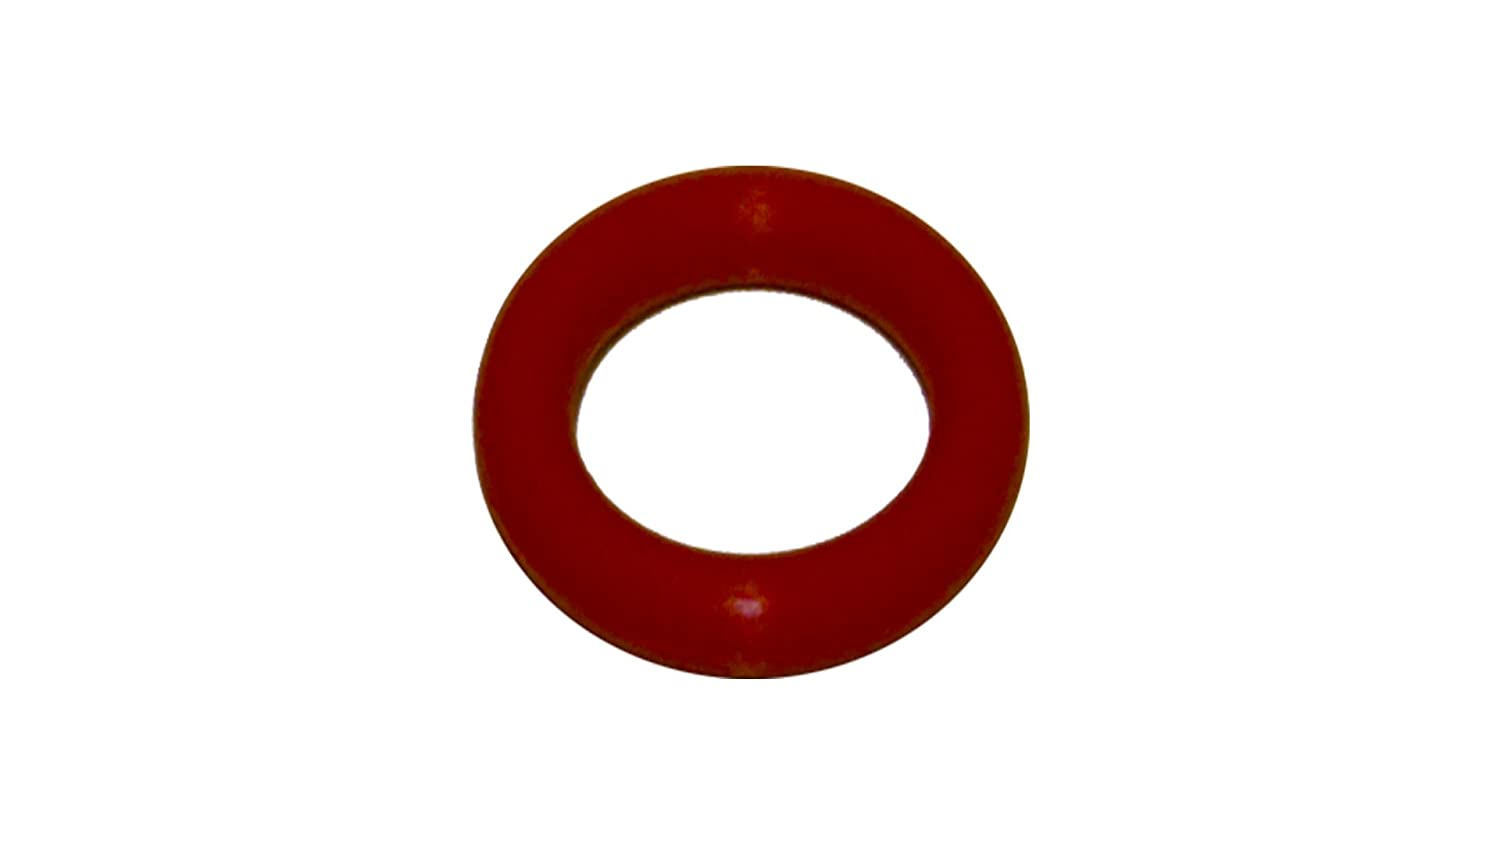 Sterling Seal and Supply (STCC) ORSIL428 Number 428 Standard Silicone O-Ring, Excellent Resistance to Oxygen, Ozone and Sunlight, Vinyl Methyl Silicone, 70 Durometer Hardness, 4-7/8